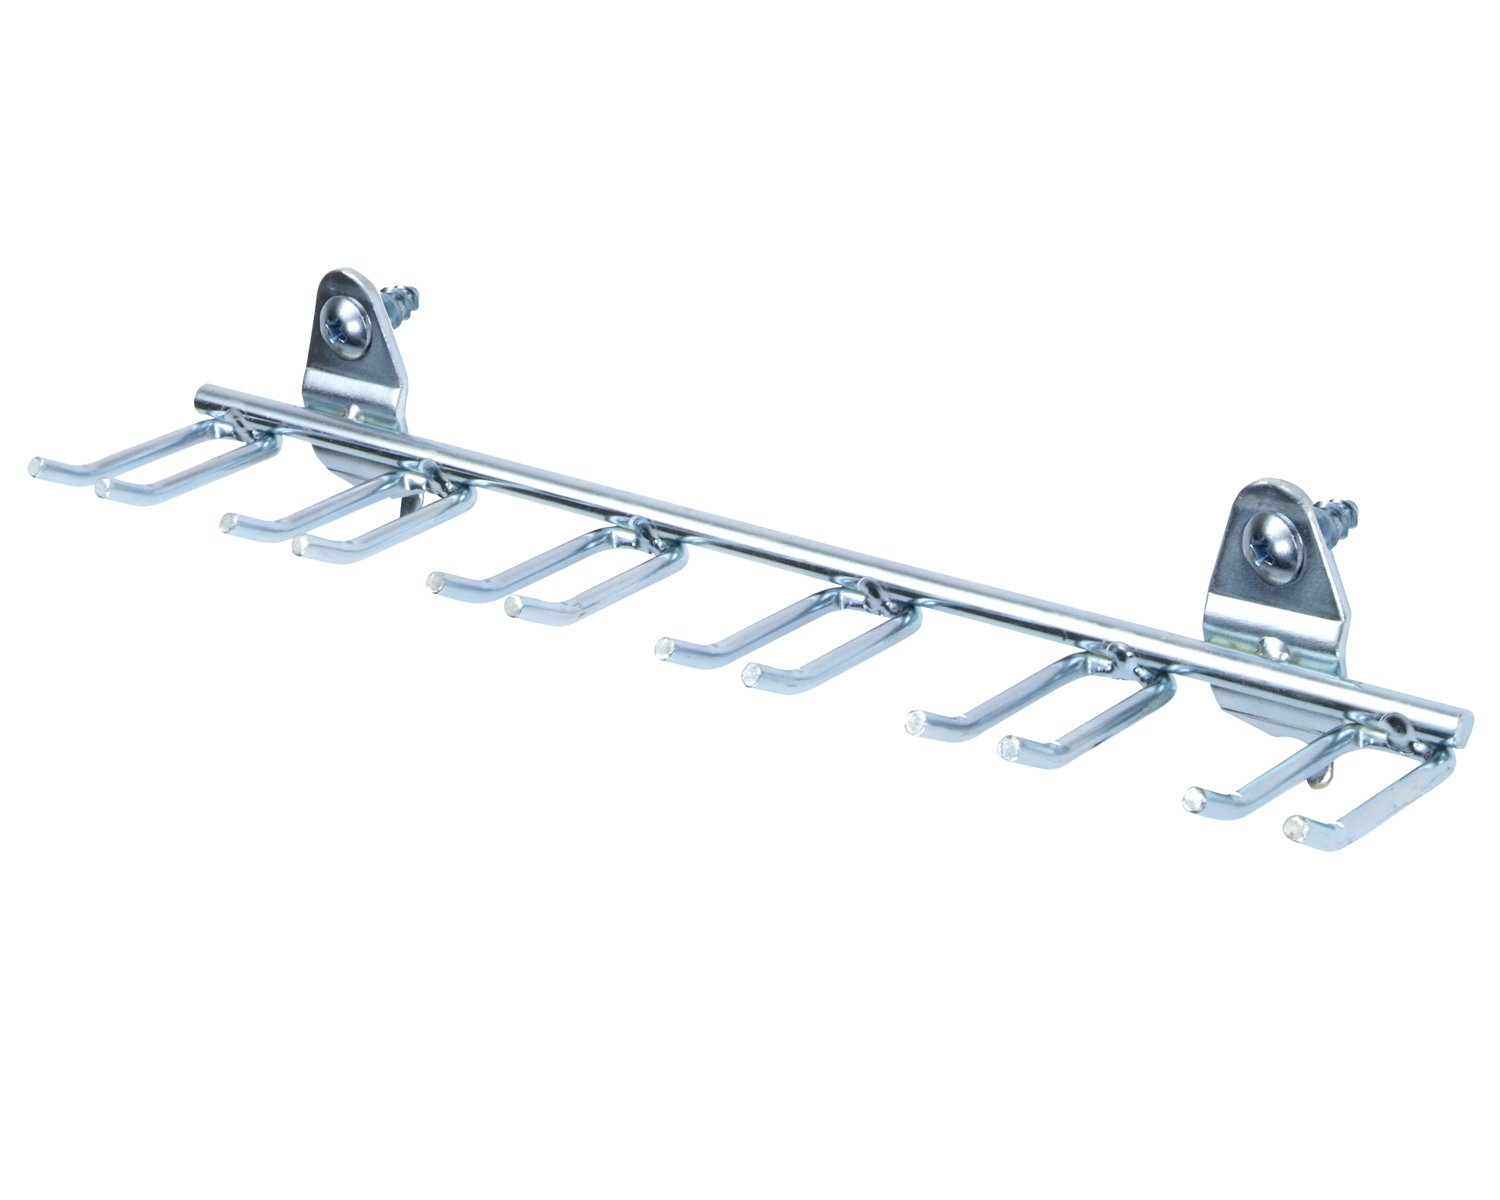 Triton Products 76660 DuraHook 8-1/8-Inch W, 7/16 with 13/16-Inch I.D. Zinc Plated Steel Multi-Prong Tool/Wrench Holder for DuraBoard or 1/8 Inch and 1/4 Inch Pegboard, 5-Pack by DuraHook